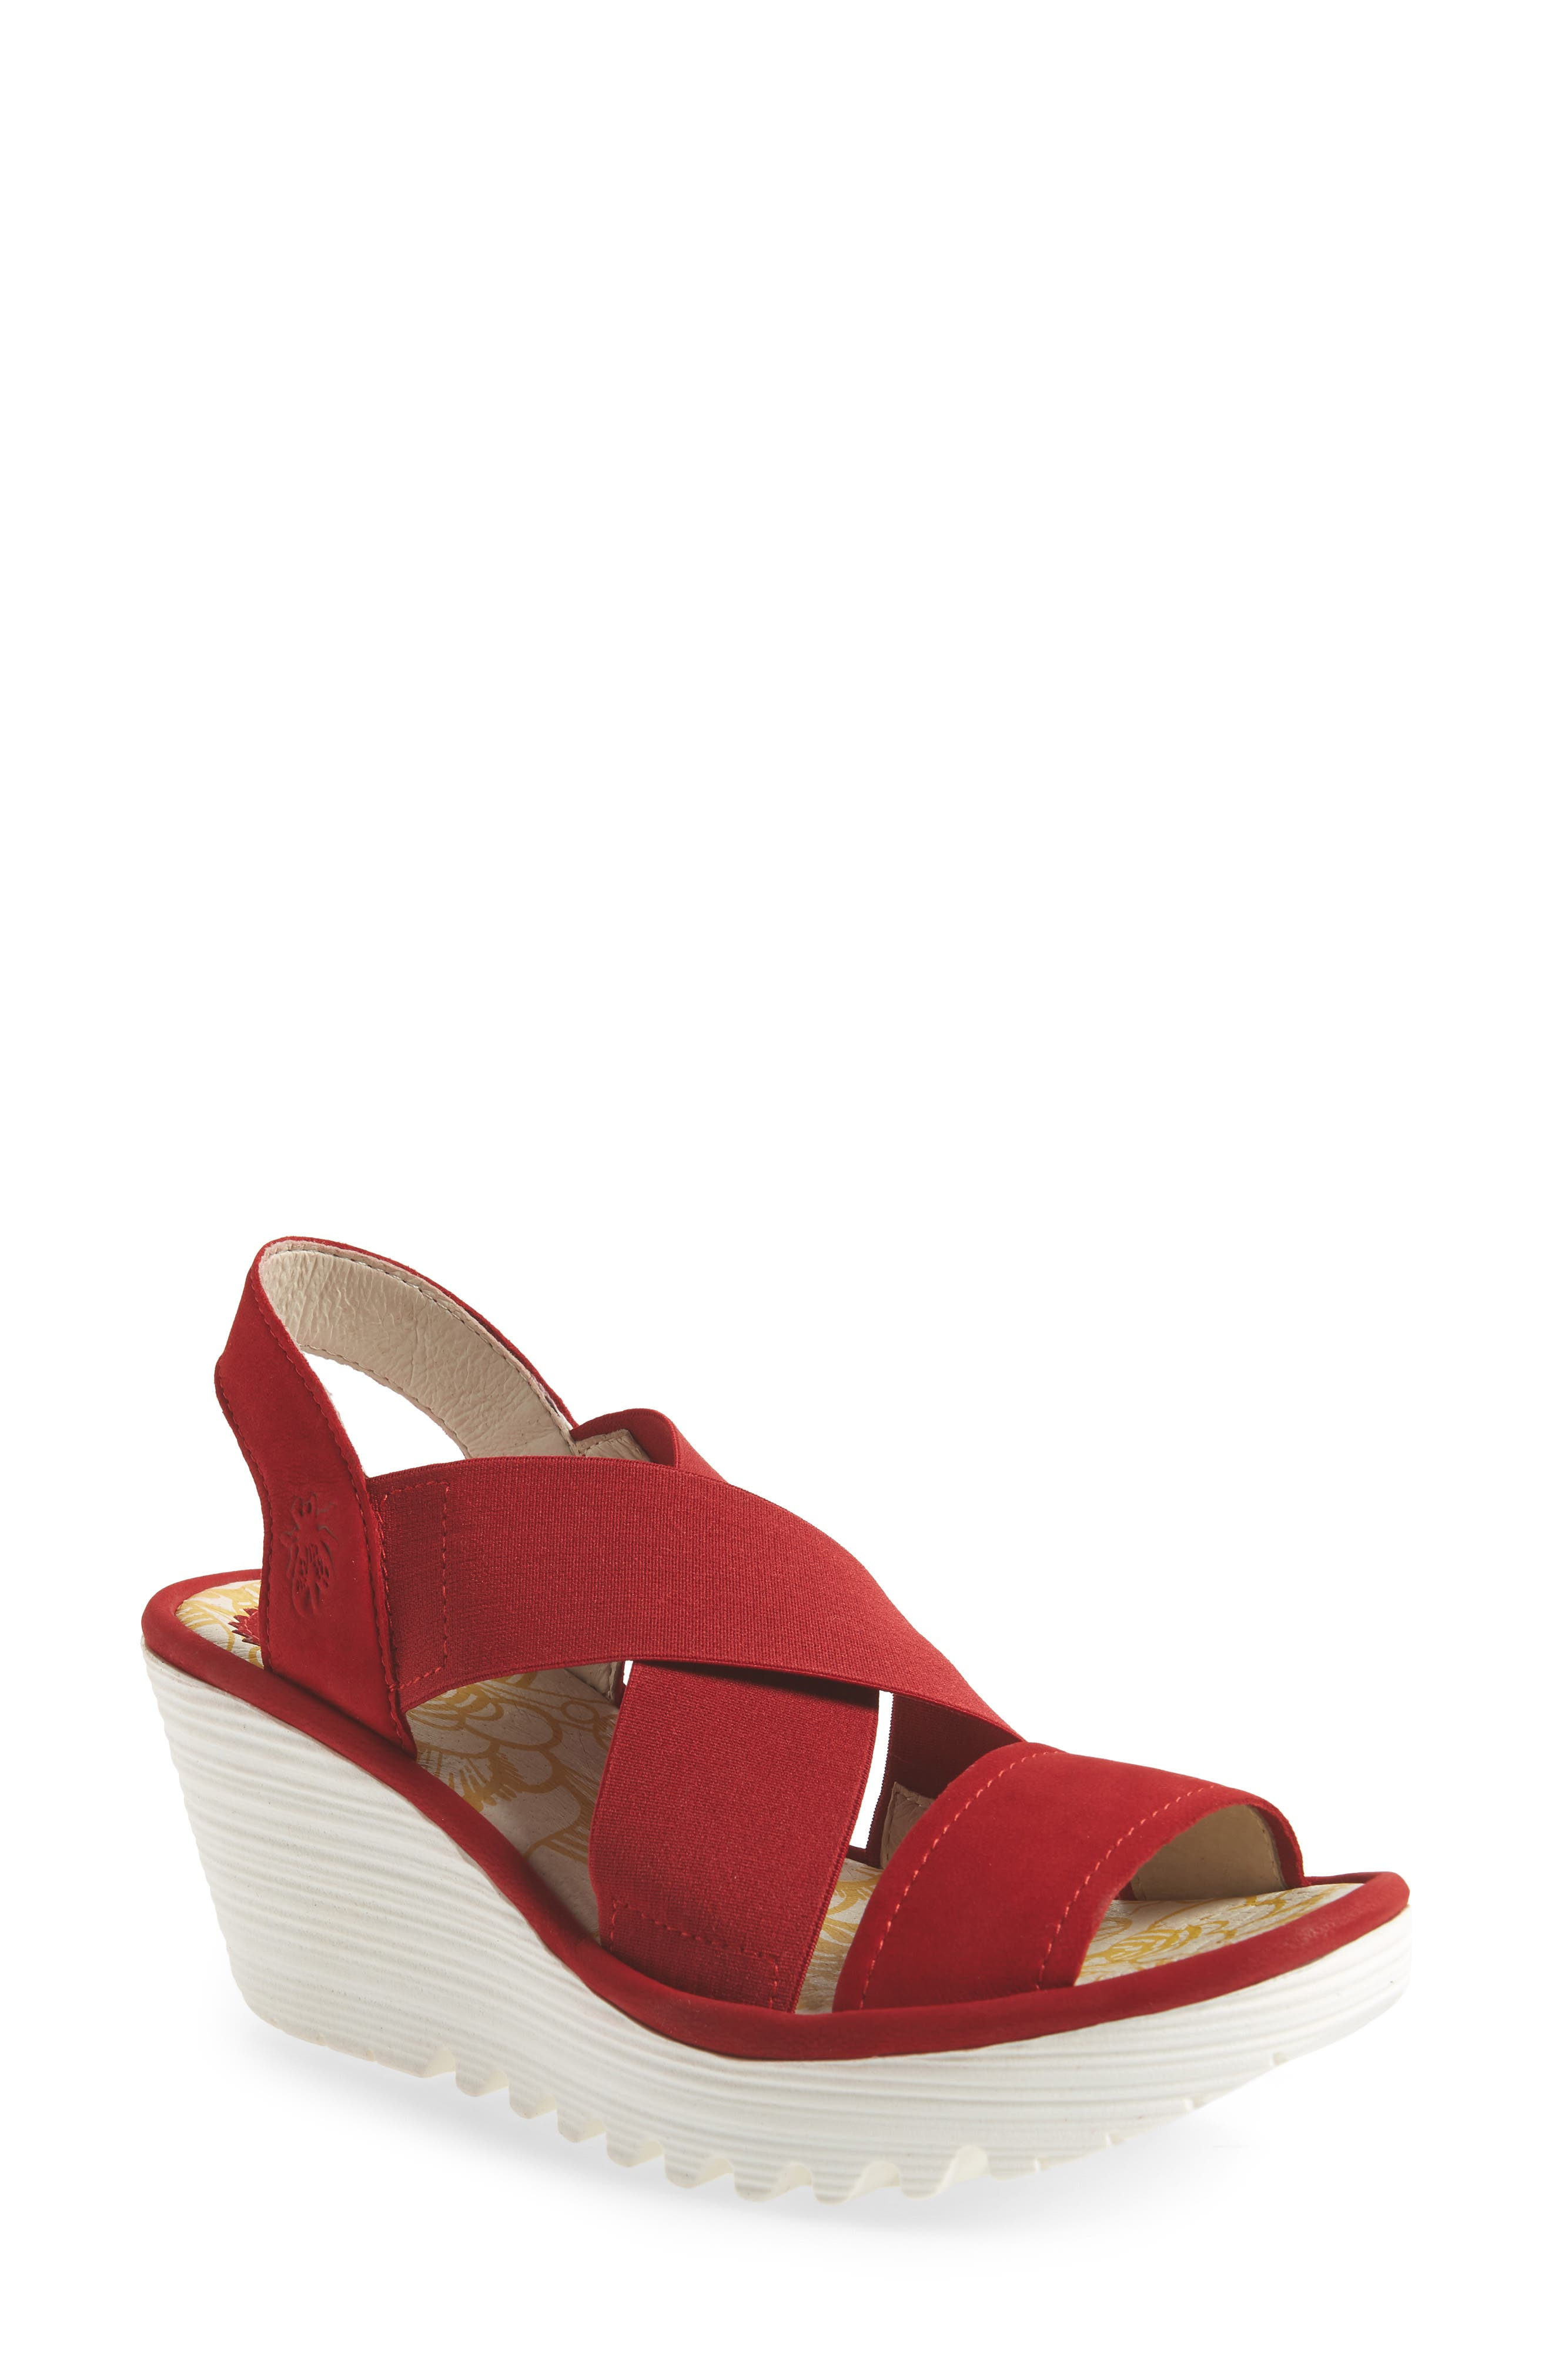 Yaji Cross Wedge Sandal,                             Main thumbnail 1, color,                             RED LEATHER